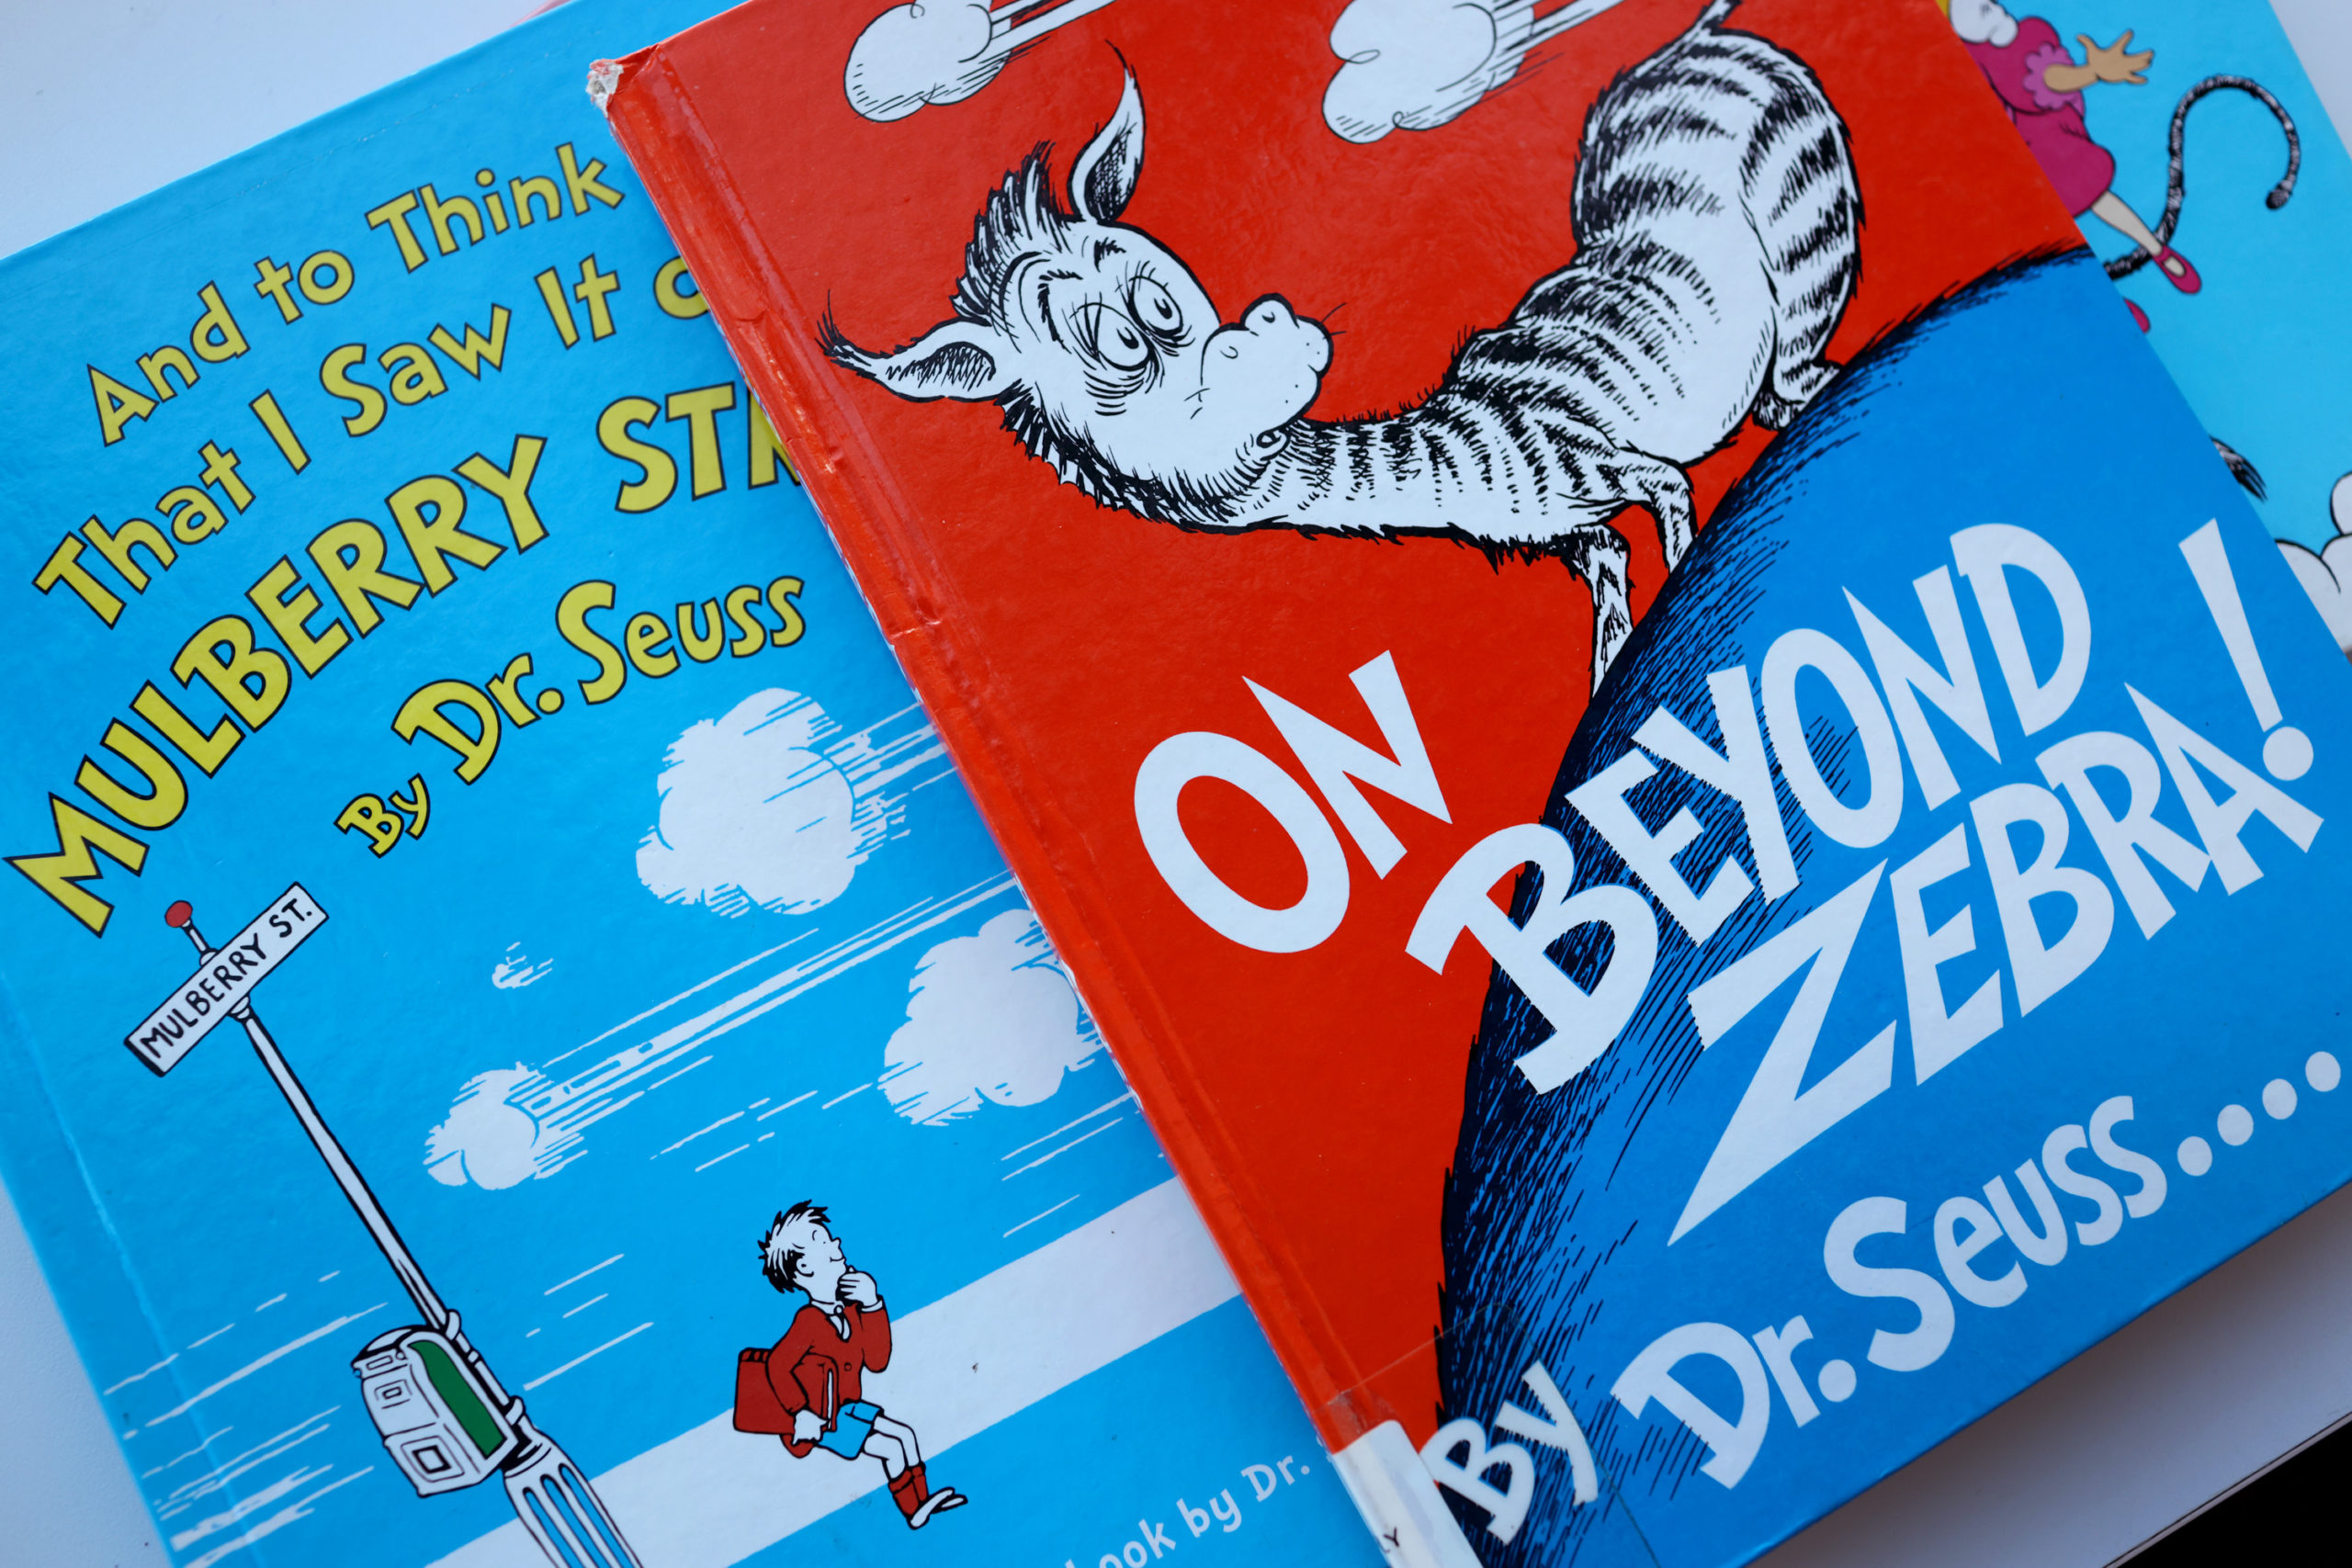 """CHICAGO, ILLINOIS - MARCH 02: Books by Theodor Seuss Geisel, aka Dr. Seuss, including """"On Beyond Zebra!"""" and """"And to Think That I Saw it on Mulberry Street,"""" are offered for loan at the Chinatown Branch of the Chicago Public Library on March 02, 2021 in Chicago, Illinois. The two titles are among six by the famed children's book author that will no longer be printed due to accusations of racist and insensitive imagery. The other titles include """"If I Ran the Zoo,"""" """"McElligot's Pool,"""" """"Scrambled Eggs Super!"""" and """"The Cat's Quizzer."""" (Photo Illustration by Scott Olson/Getty Images)"""